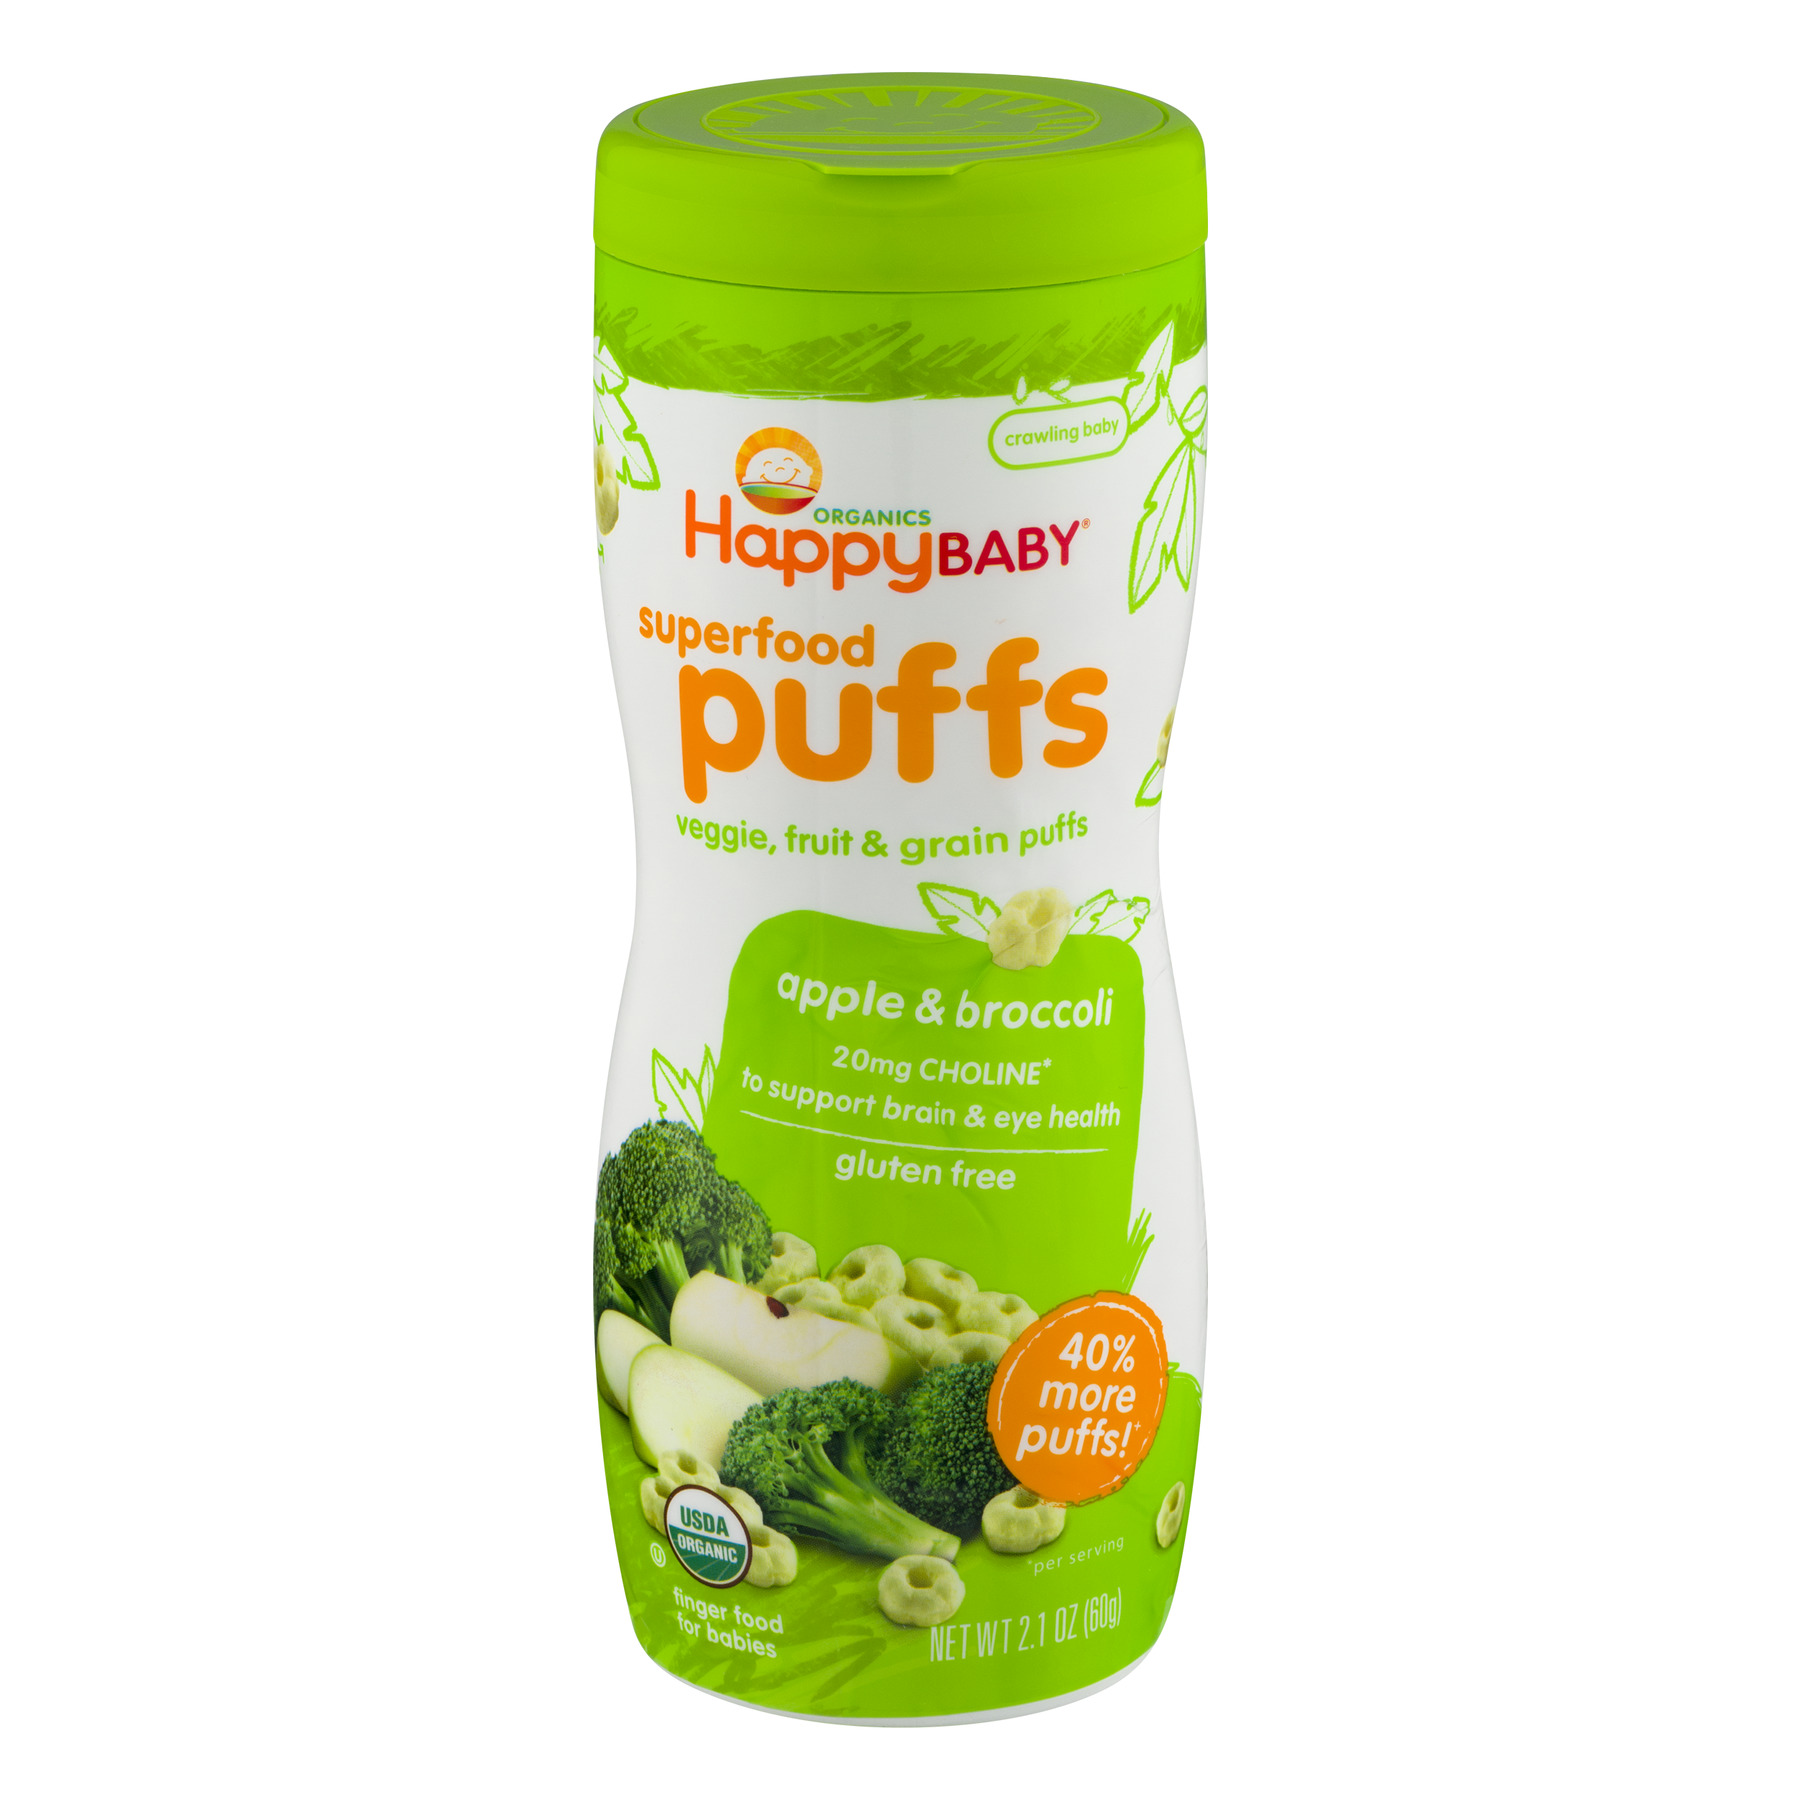 HappyBaby Organics Superfood Puffs Apple & Broccoli, 2.1 OZ